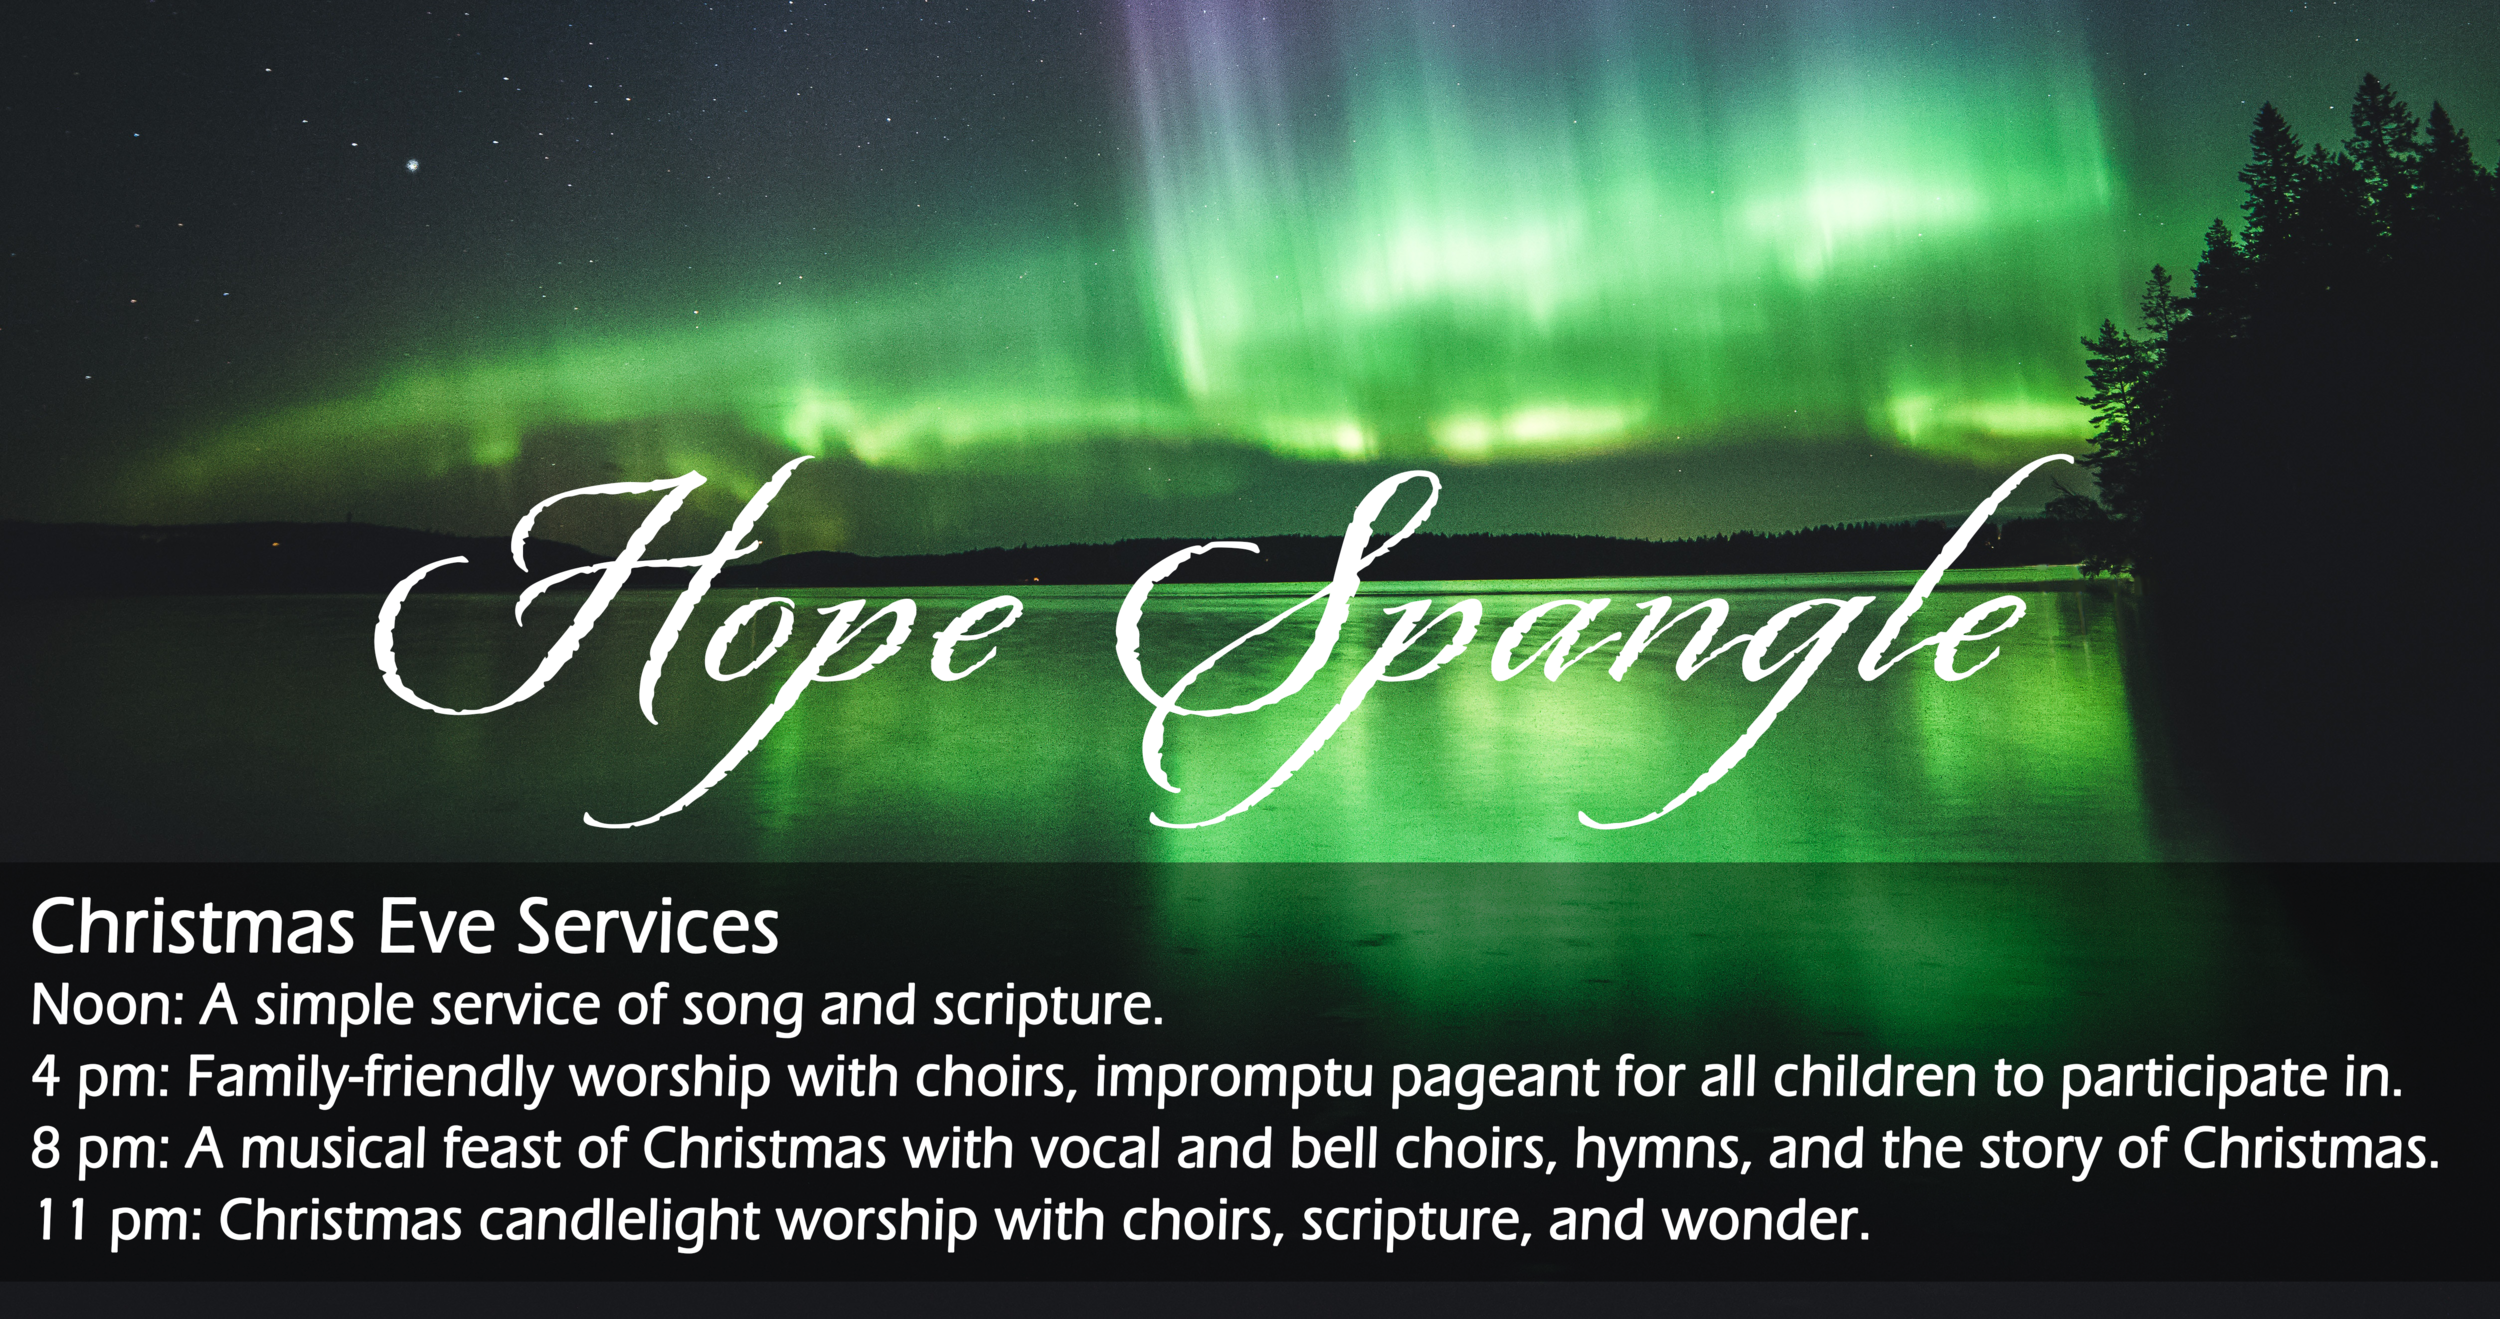 This is the family service extravaganza! Bombastic worship music and an adorable impromptu children's pageant, all wrapped up in a memorable and celebratory worship experience!